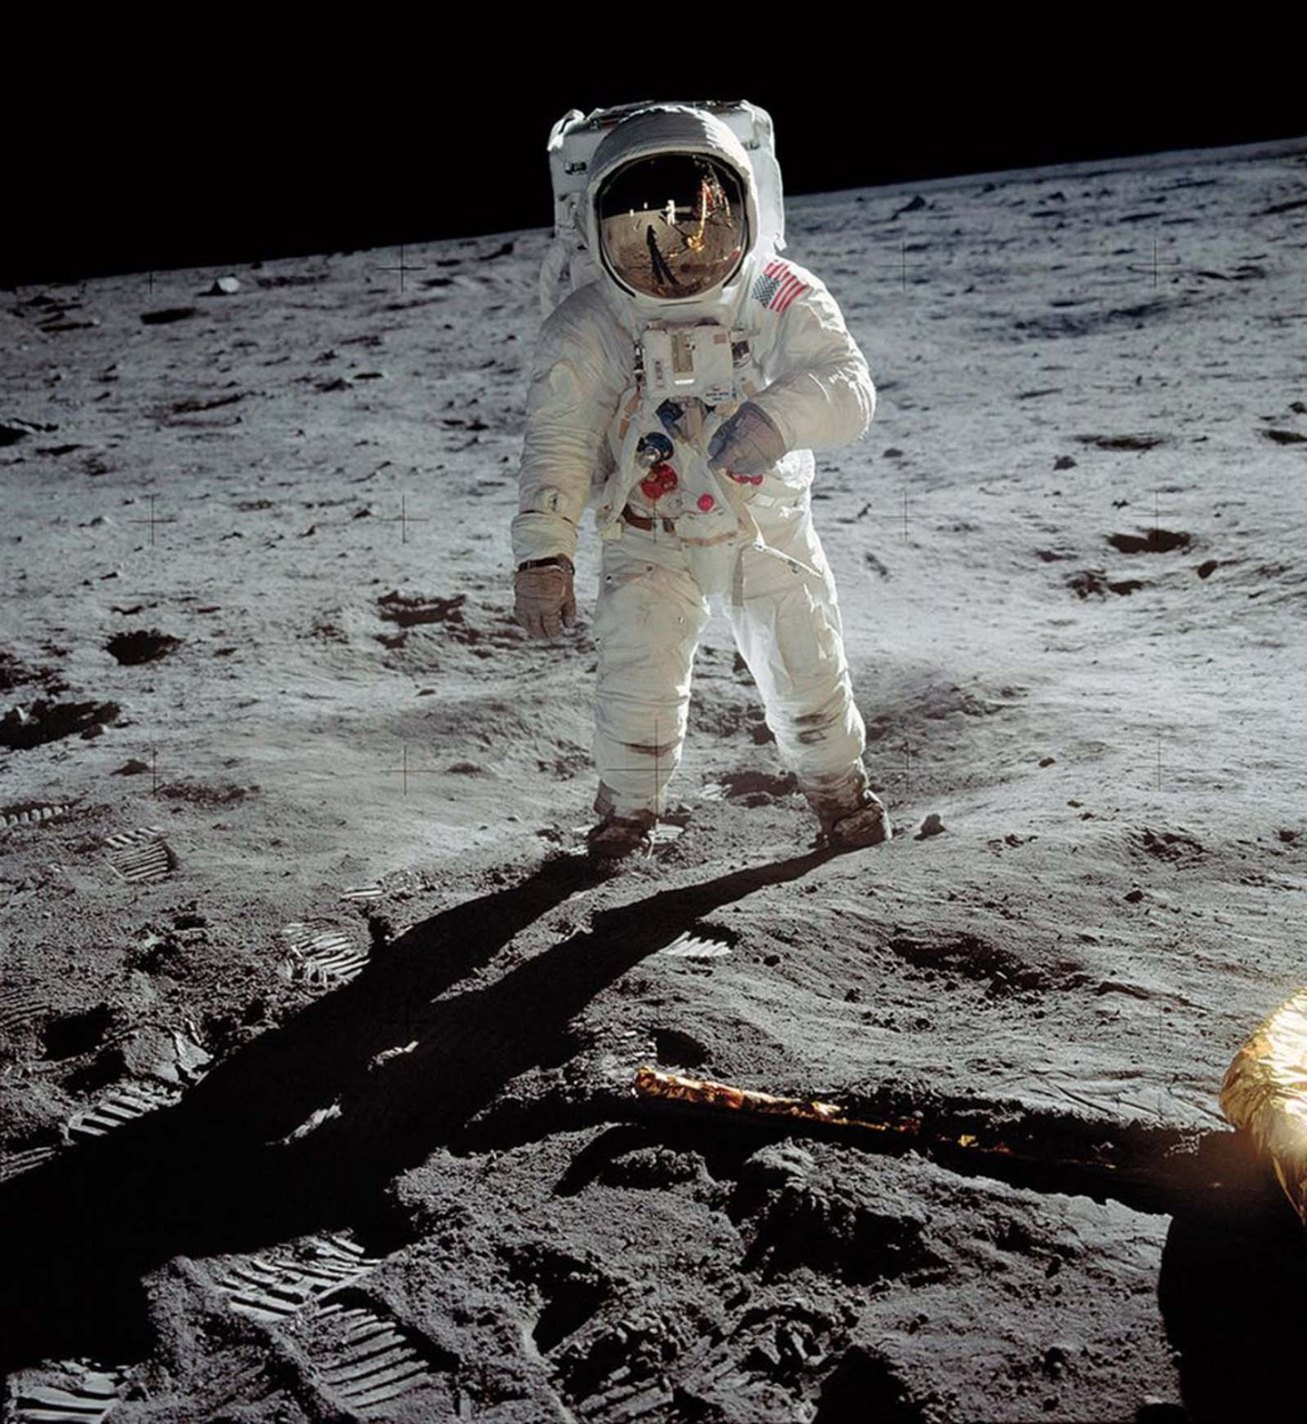 A Man on the Moon, Neil Armstrong, NASA, 1969